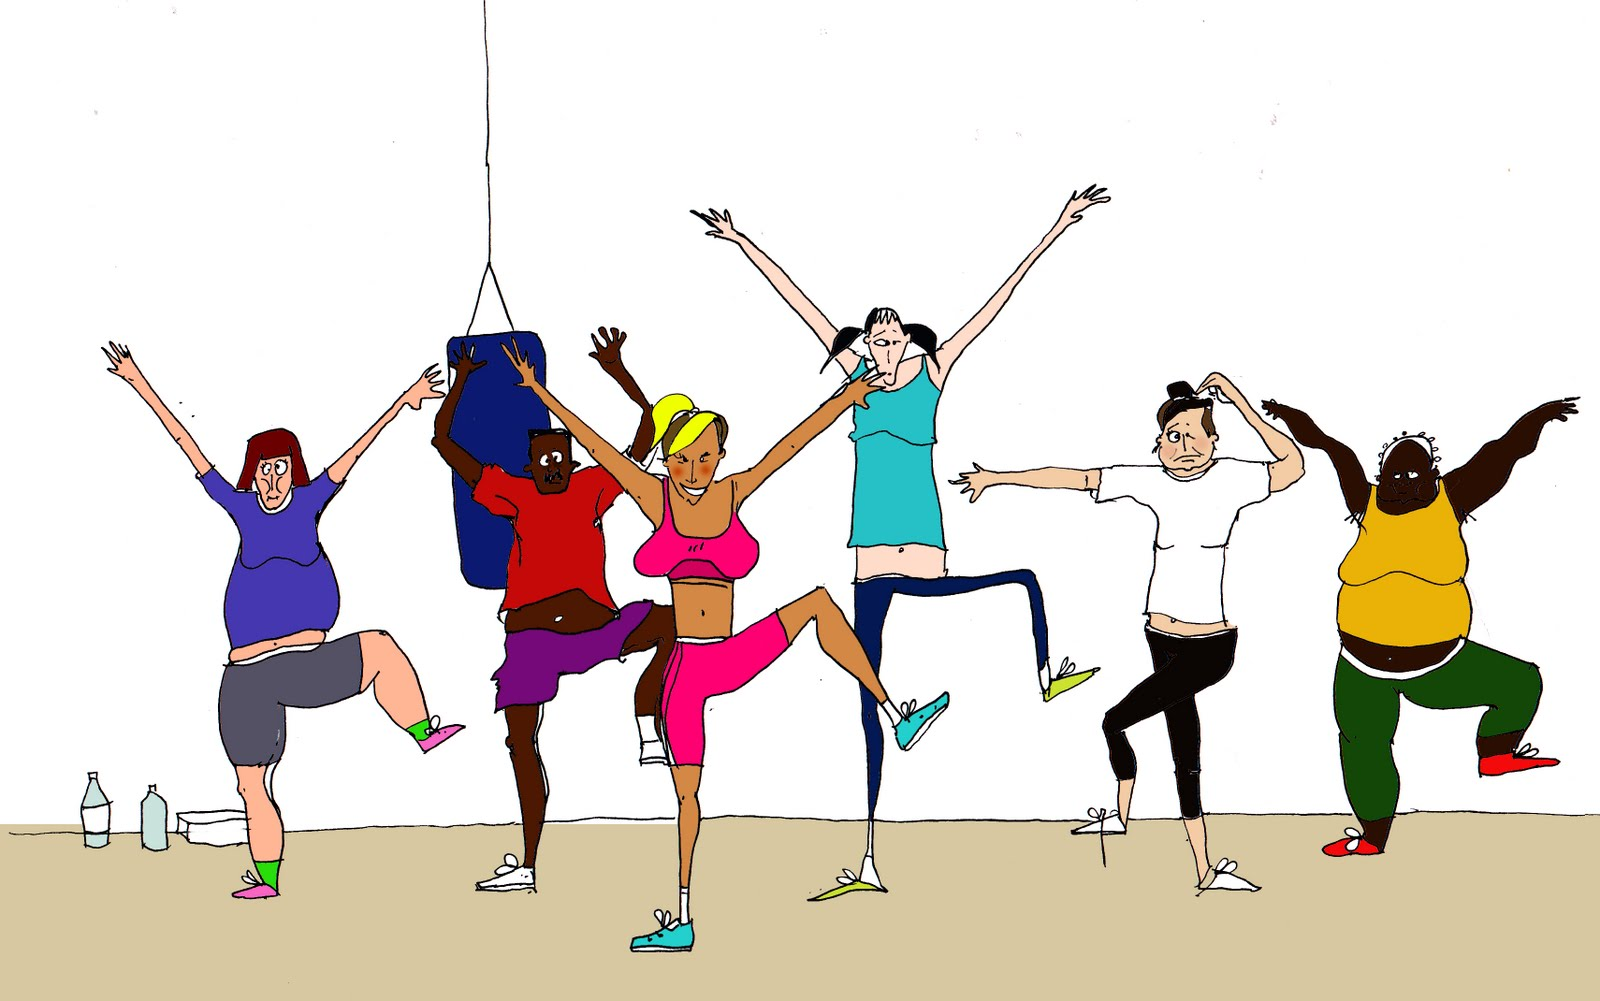 Group fit class clipart graphic freeuse library Group fitness class clipart - ClipartFest graphic freeuse library